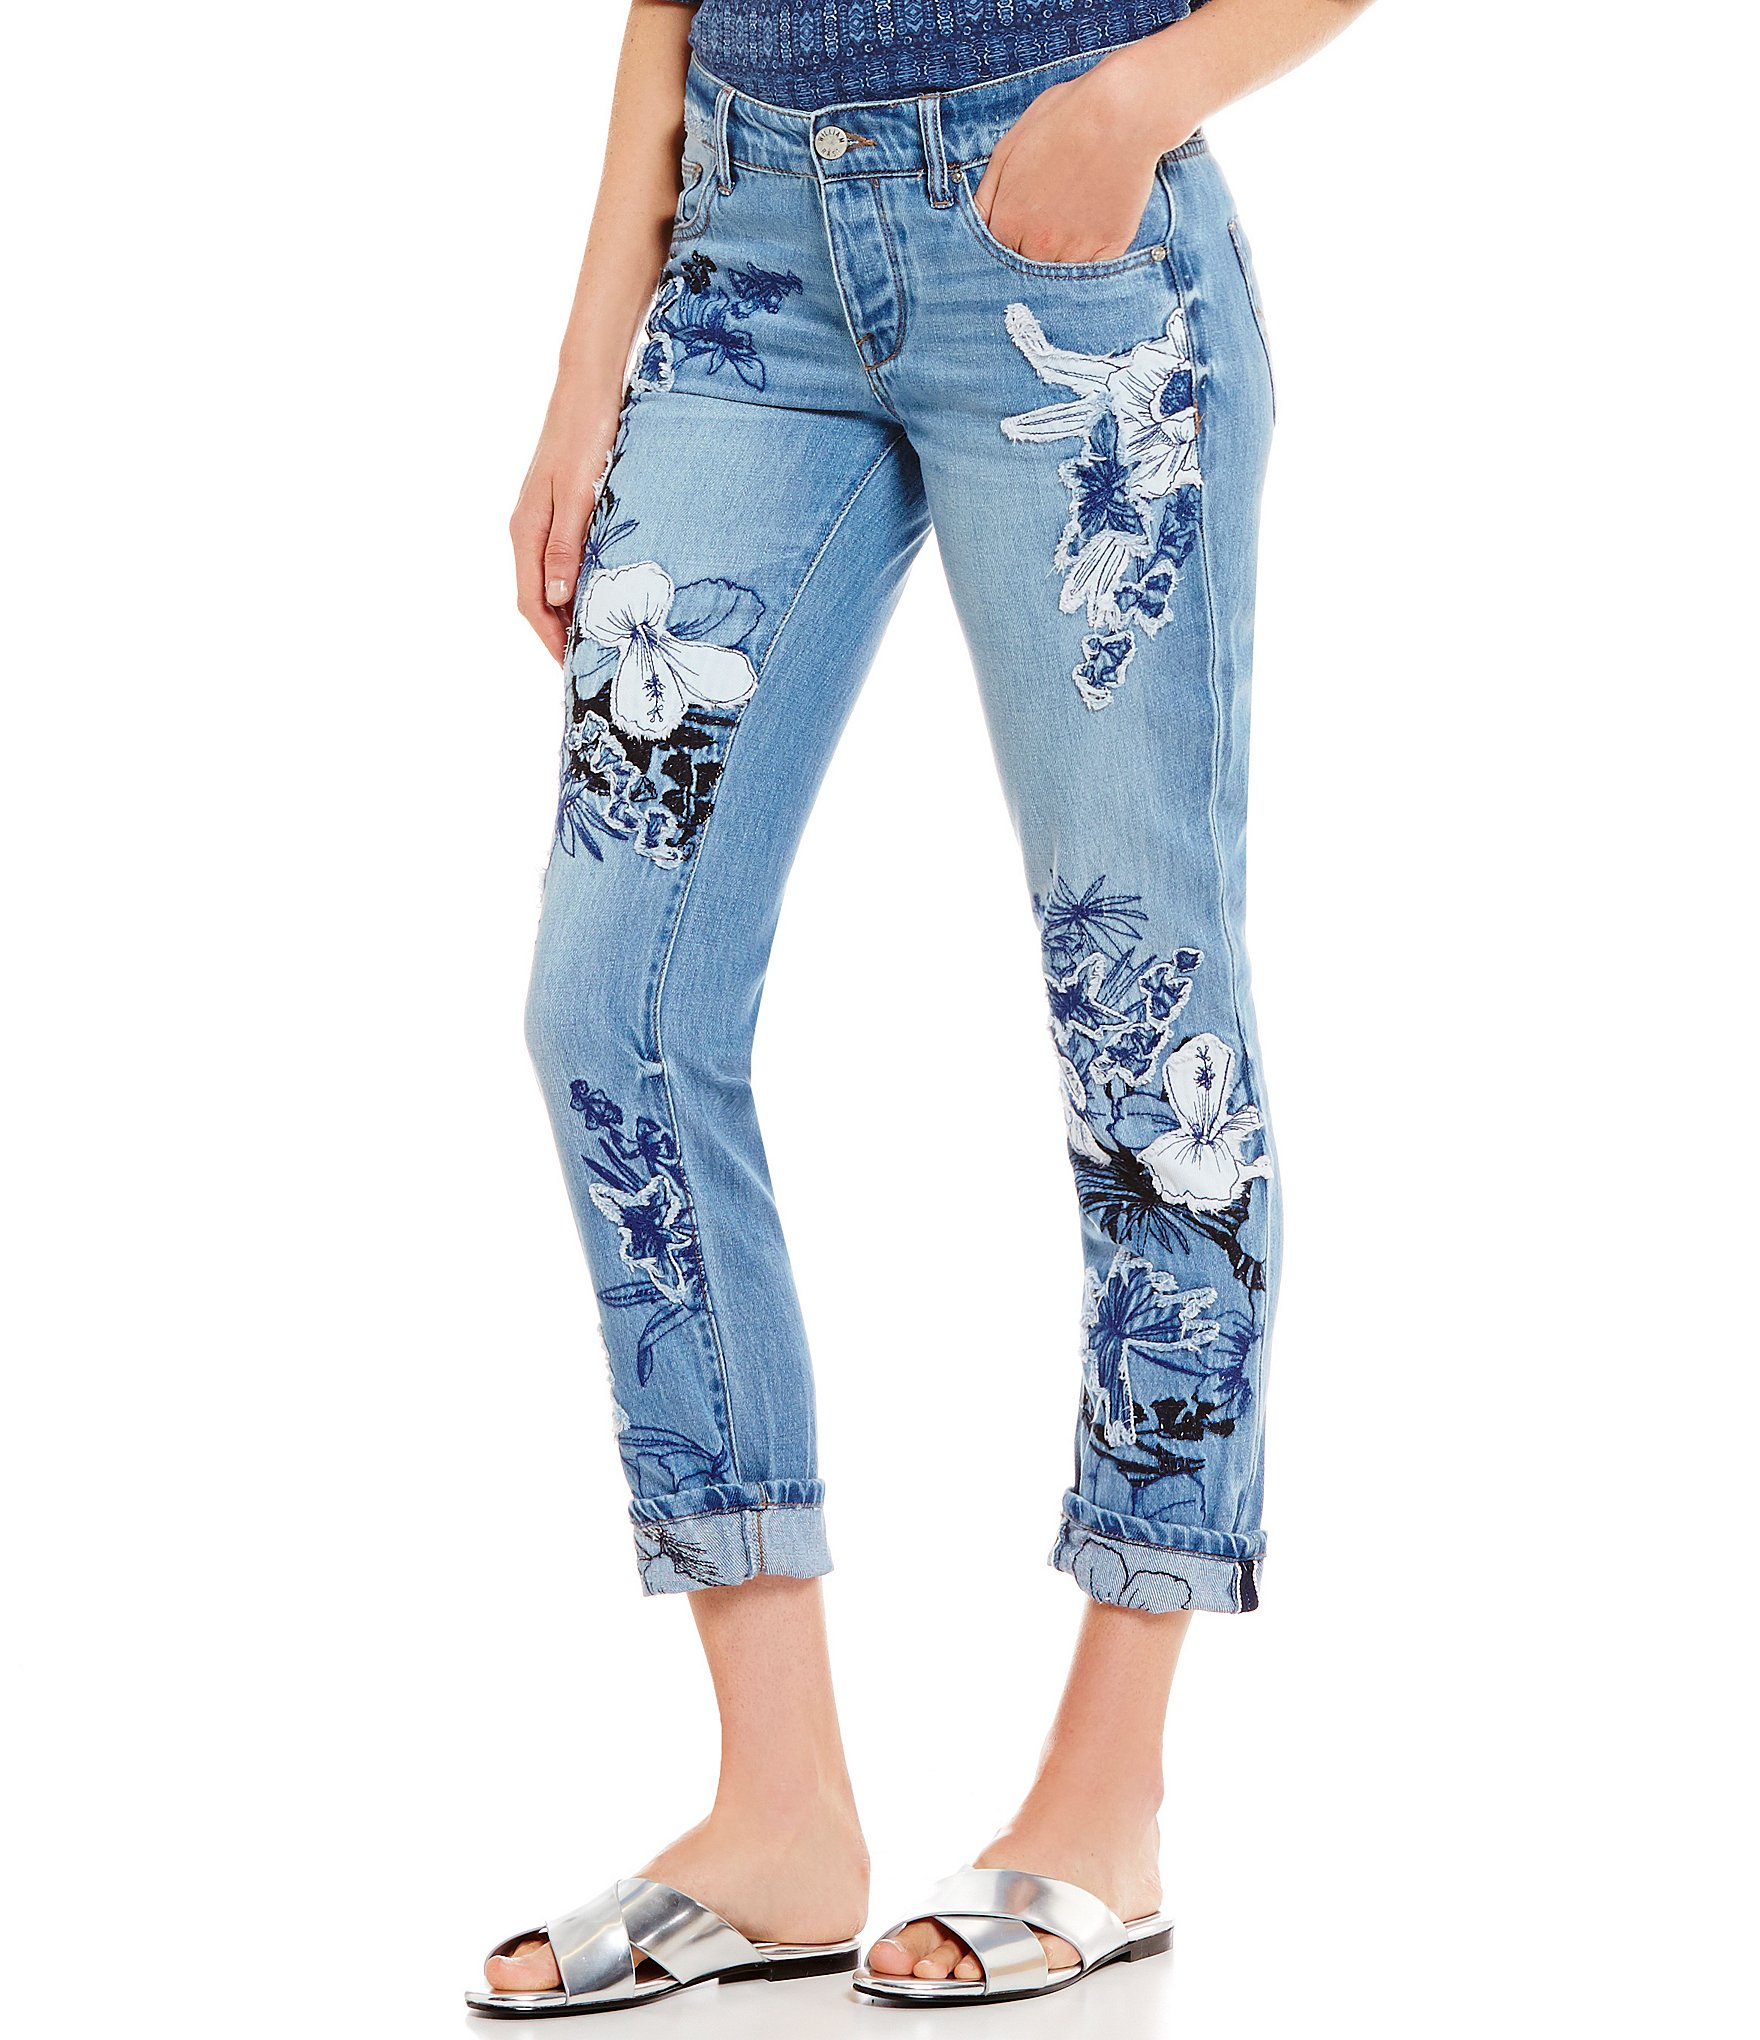 William rast my ex´s floral embroidered skinny jeans